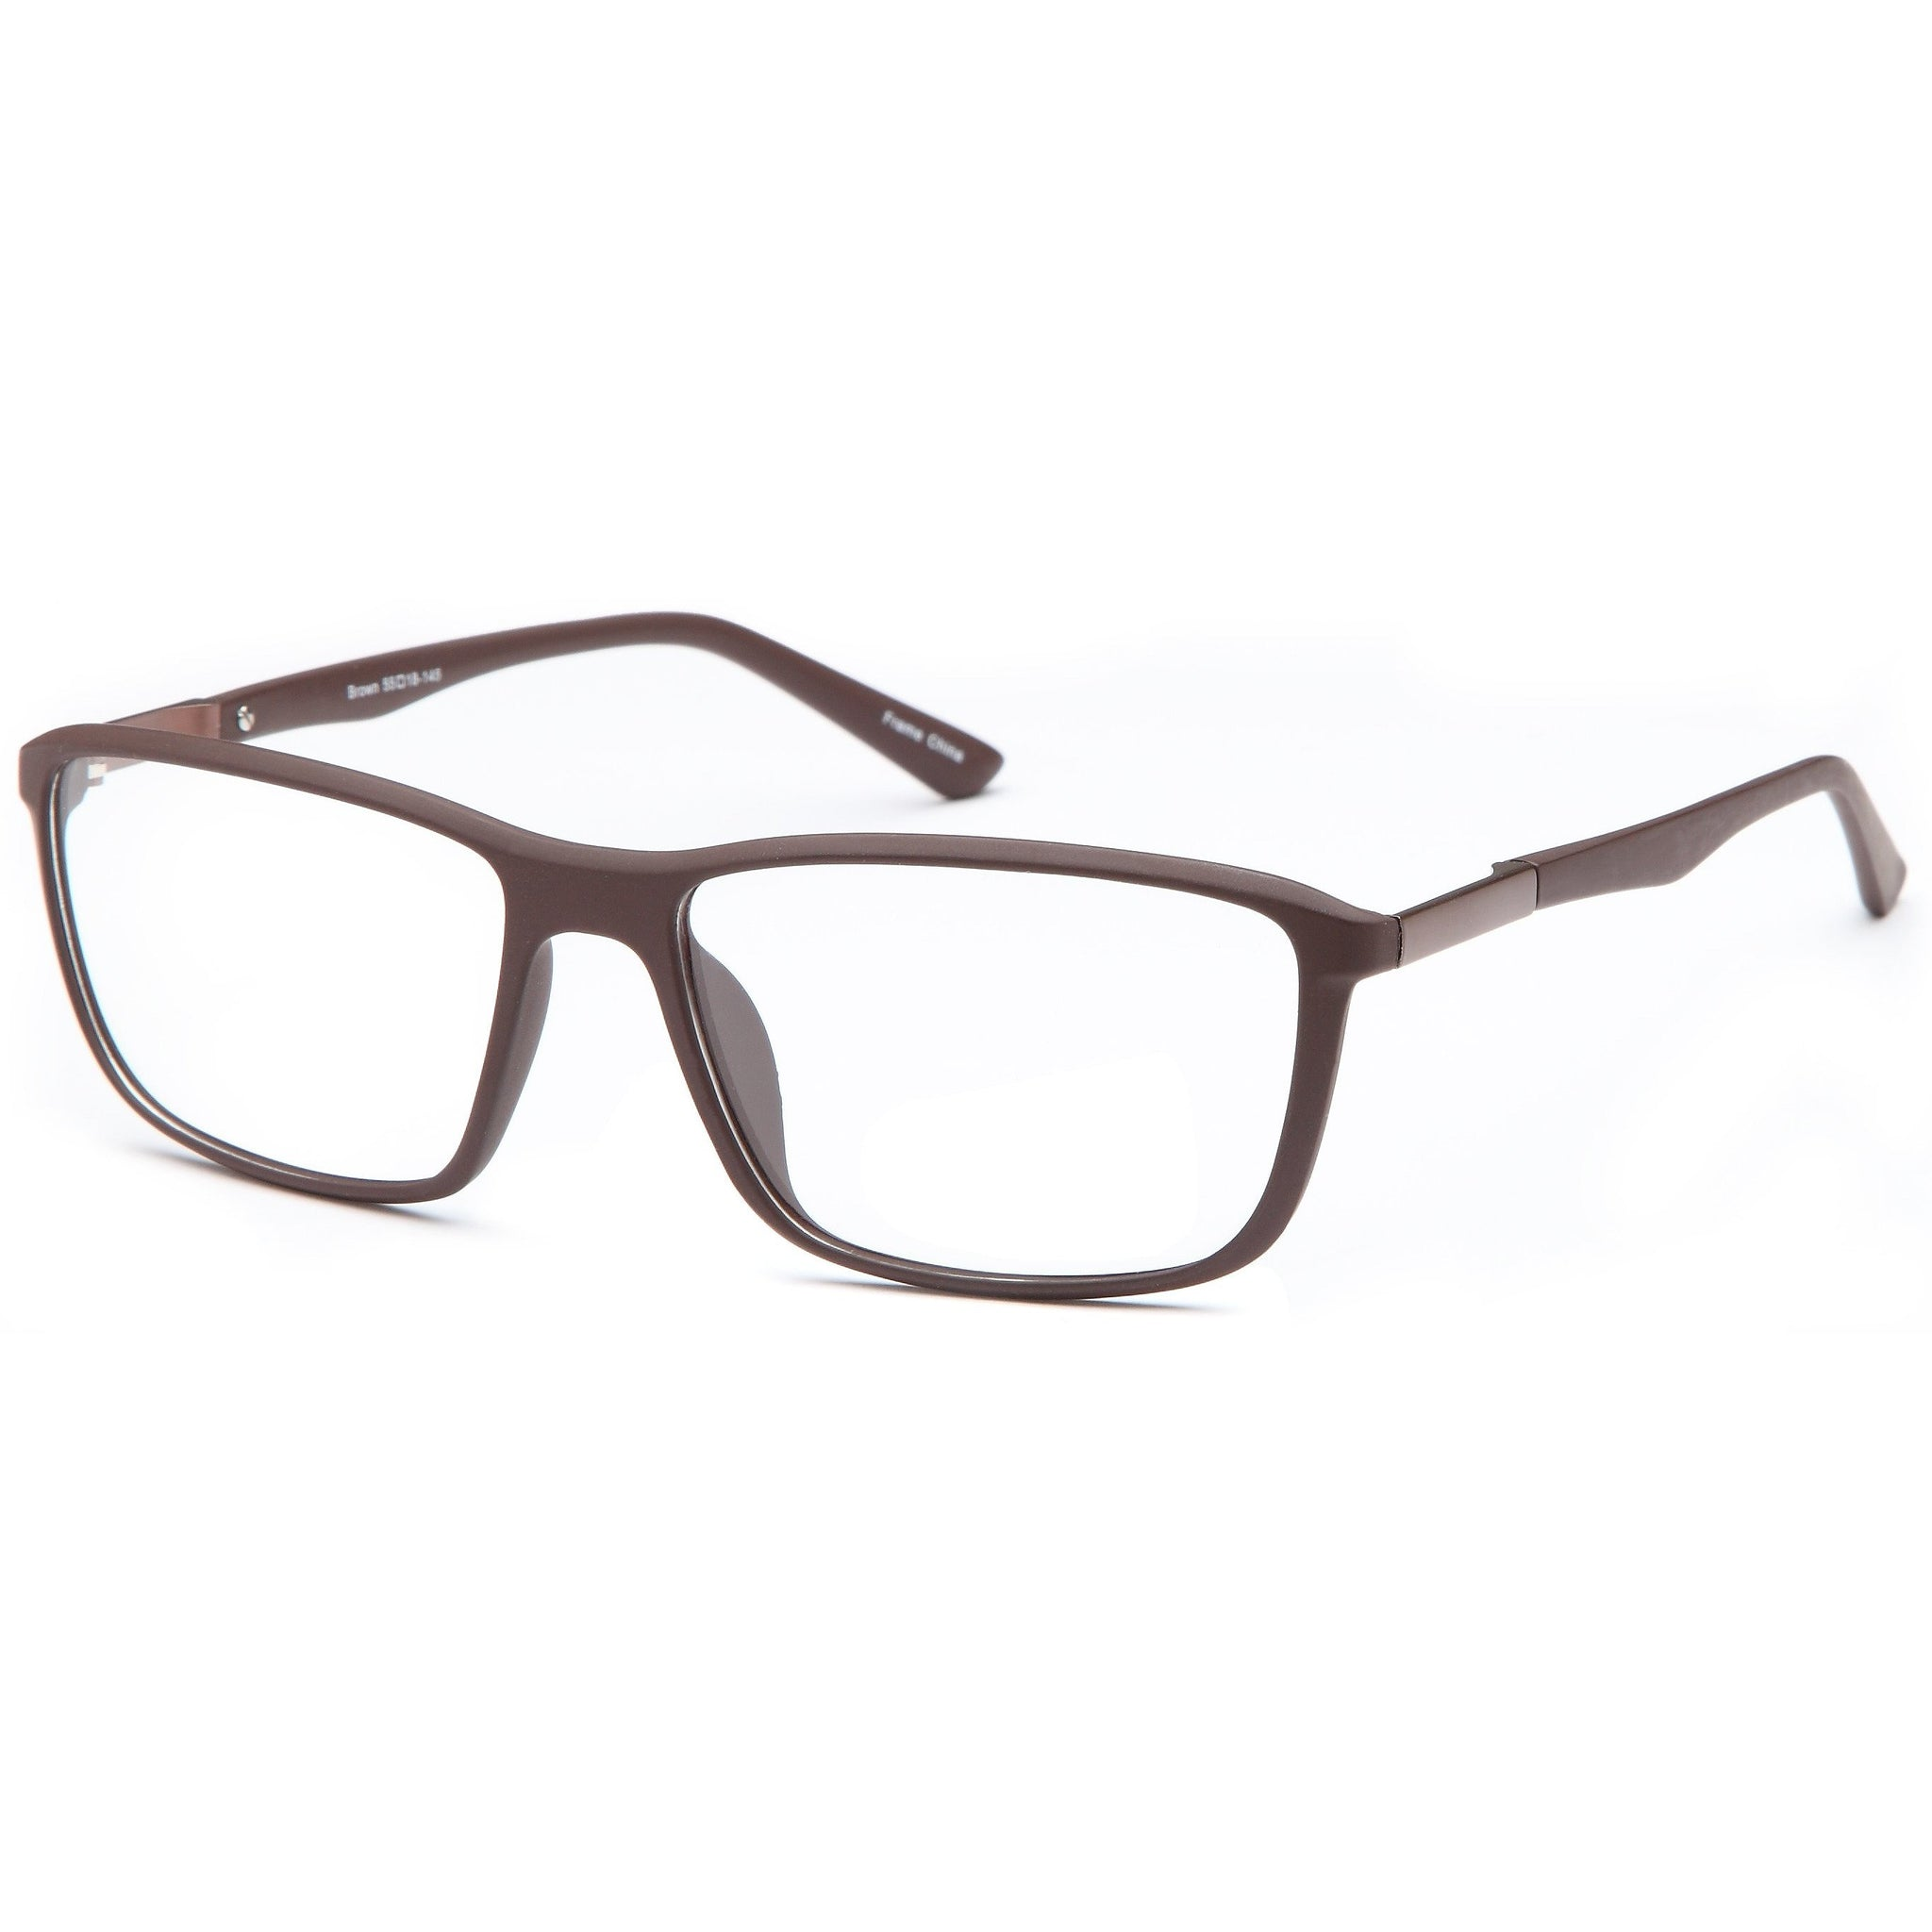 GEN Y Prescription Glasses MARCUS Eyeglasses Frame